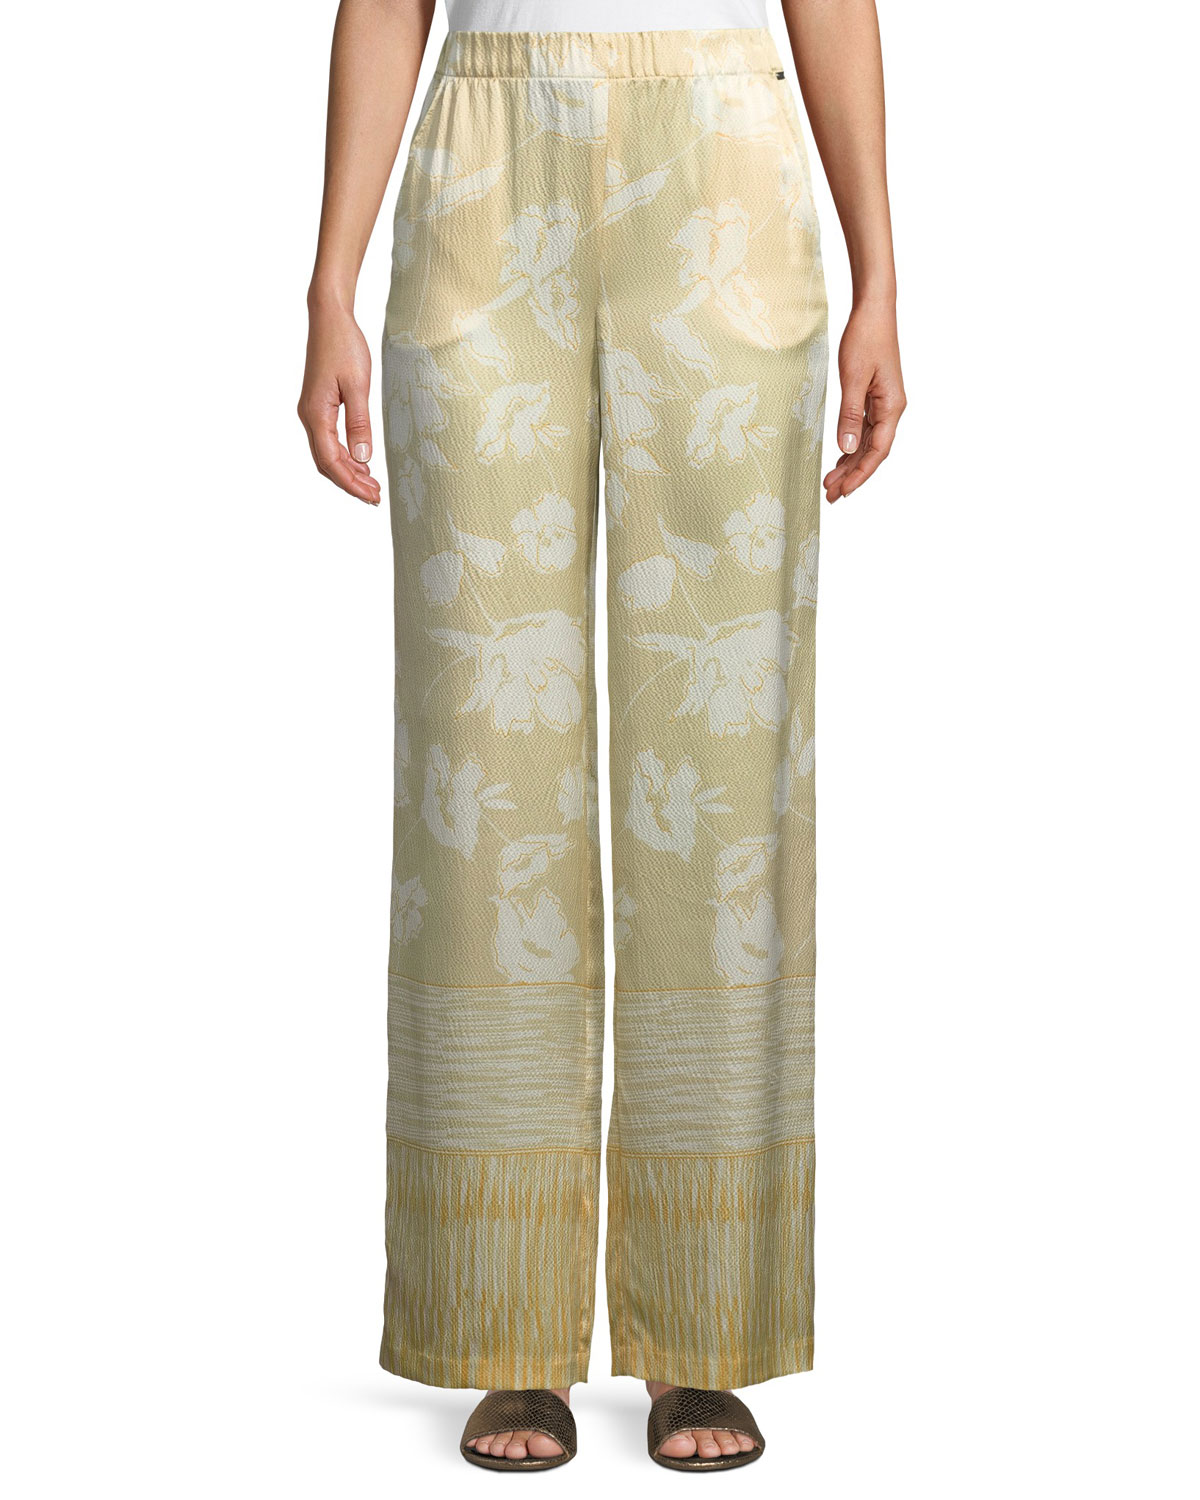 Outlined Painted Floral Hammered Silk Pants